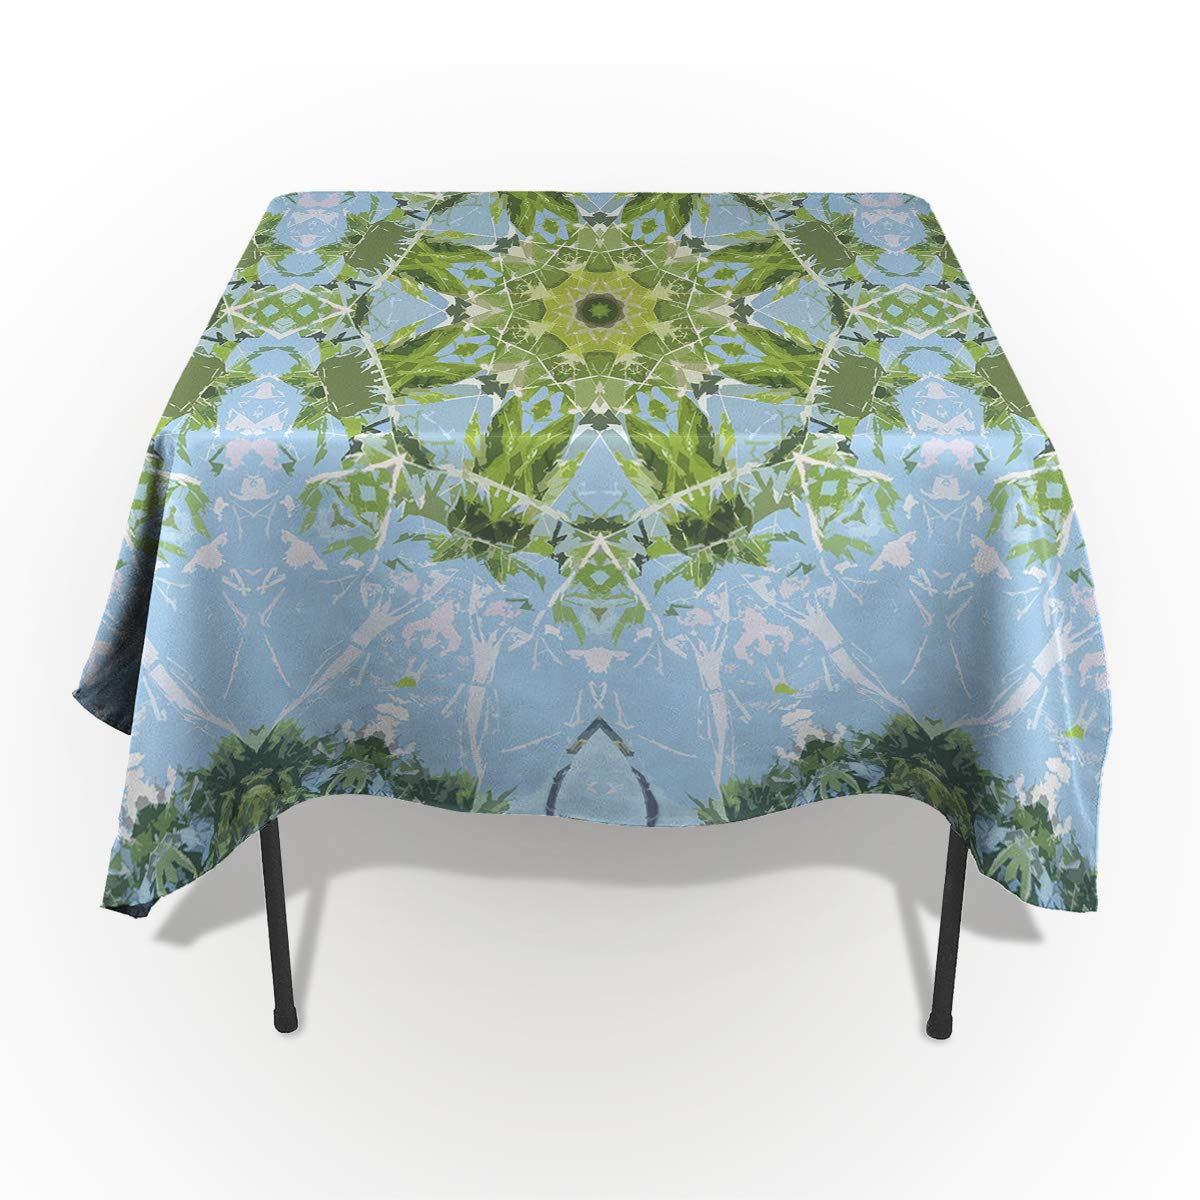 Laibao Rectangle Tablecloths for Kitchen Dinning Table Green Blue Mandara Floral Pattern Cotton Linen Table Cover for Holiday Dinner Party/Wedding/Outdoor Patio 60x90in